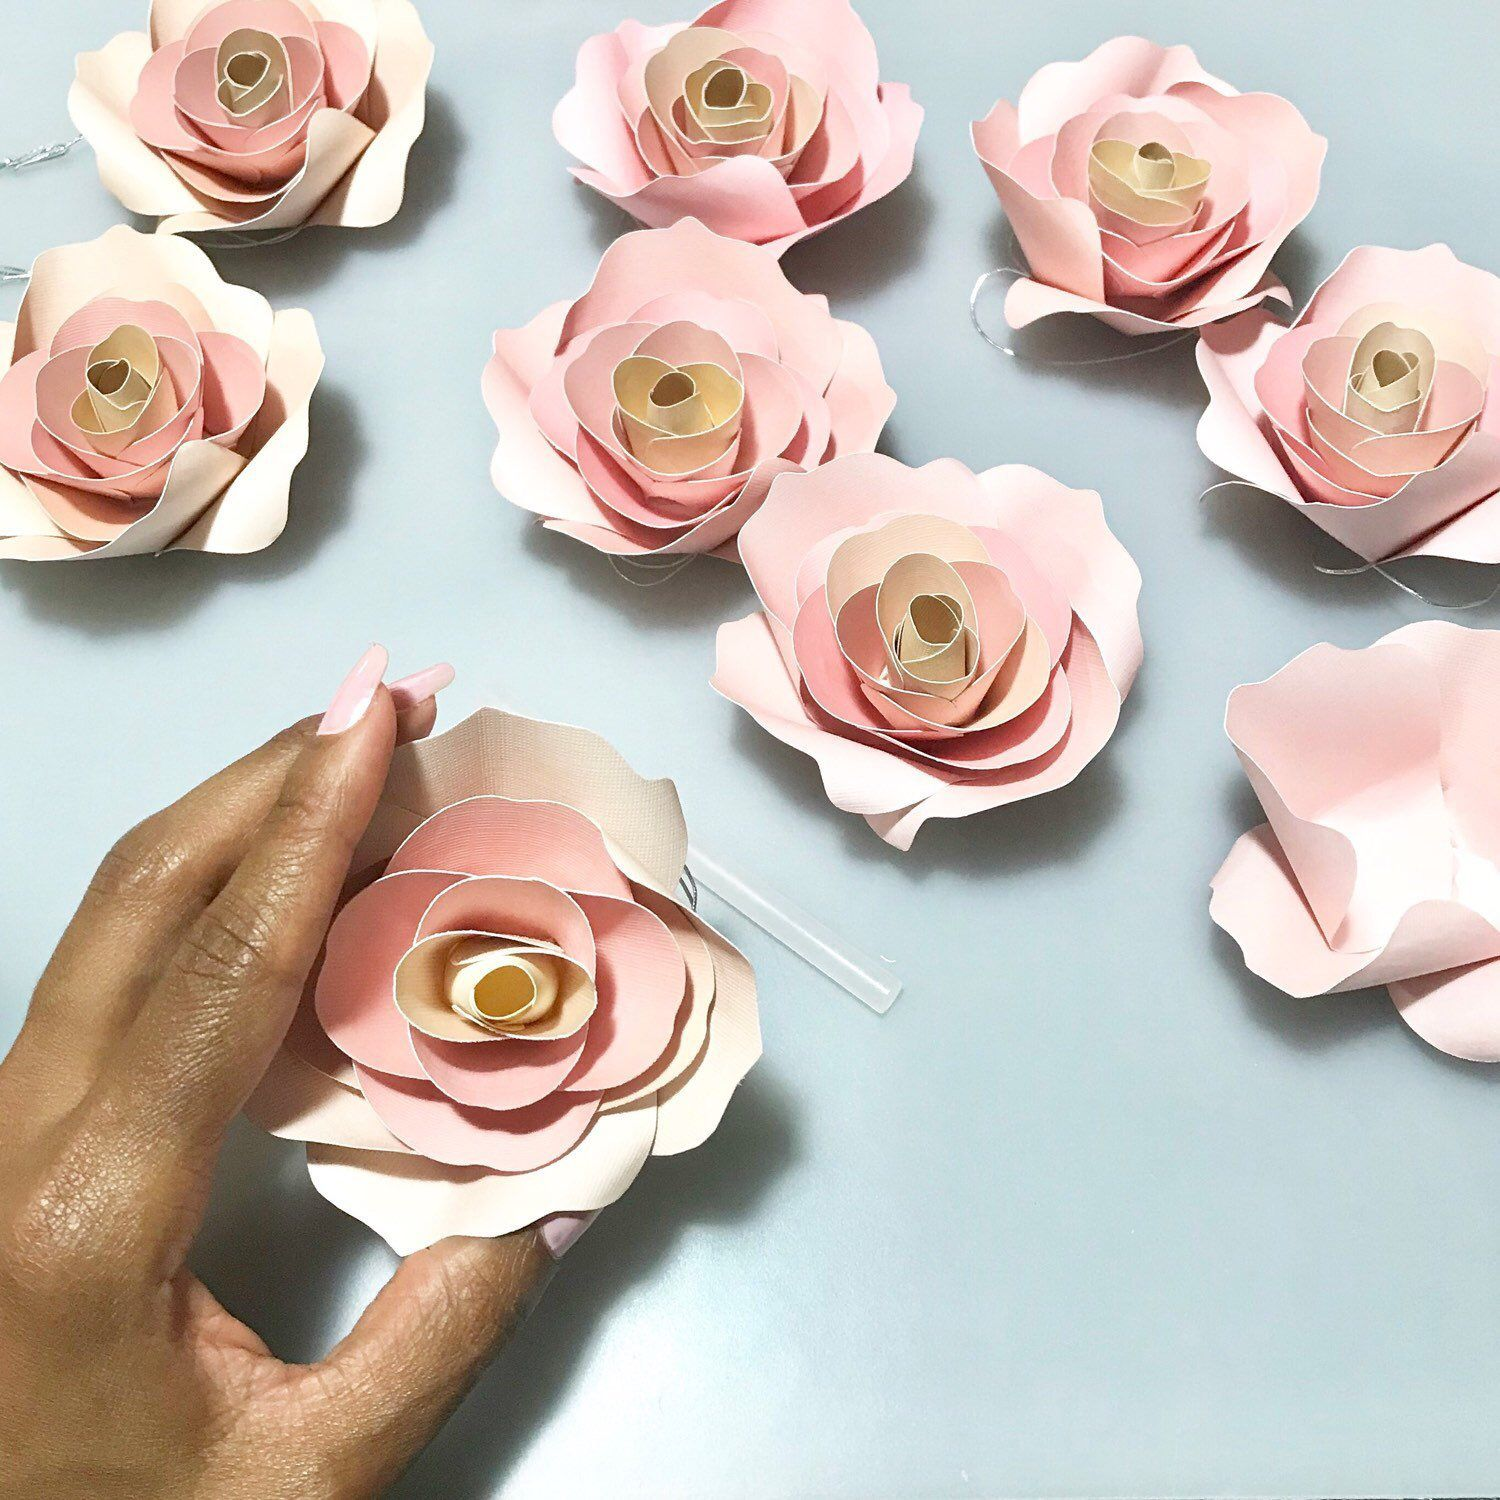 Ladiwithababy Shared A New Photo On Paper Flowers And Gorgeous